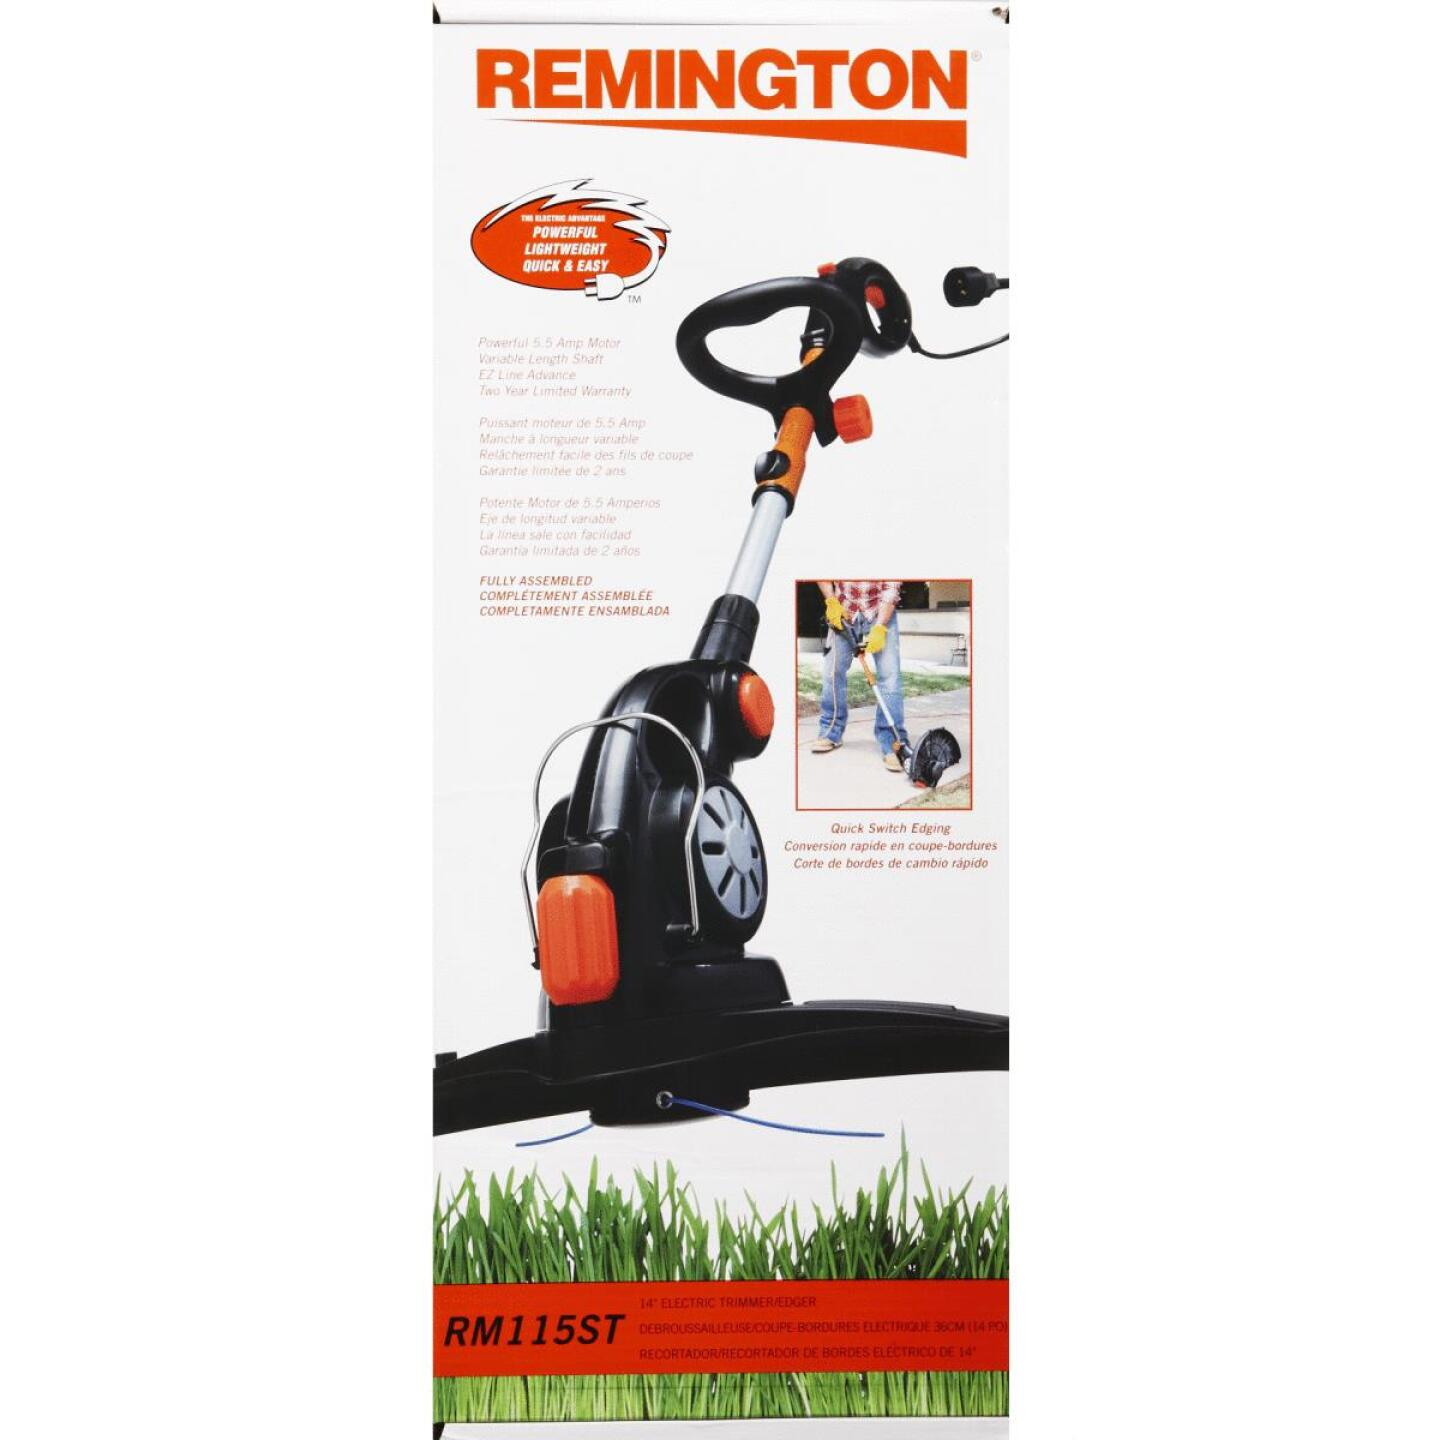 Remington RM115ST 14 In. 5.5-Amp Straight Shaft Corded Electric String Trimmer/Edger Image 4